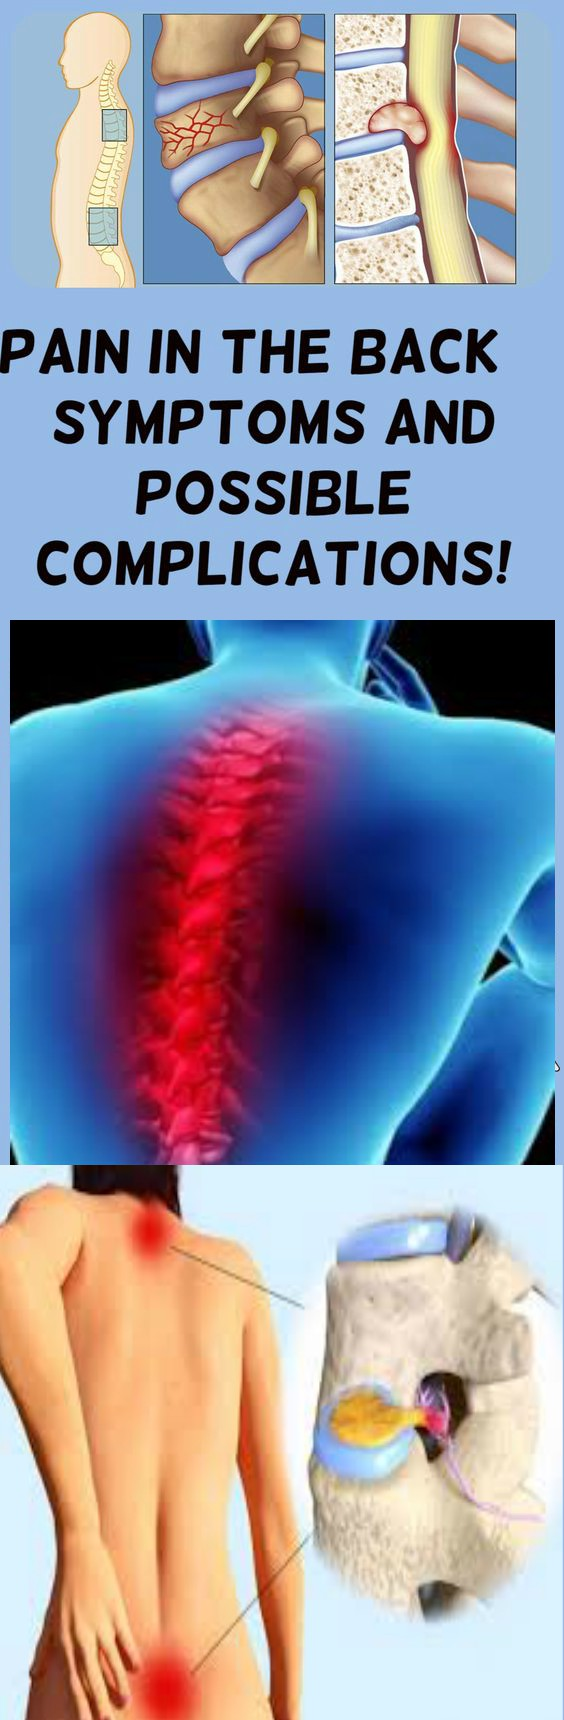 Pain In The Back – SYMPTOMS AND POSSIBLE COMPLICATIONS!